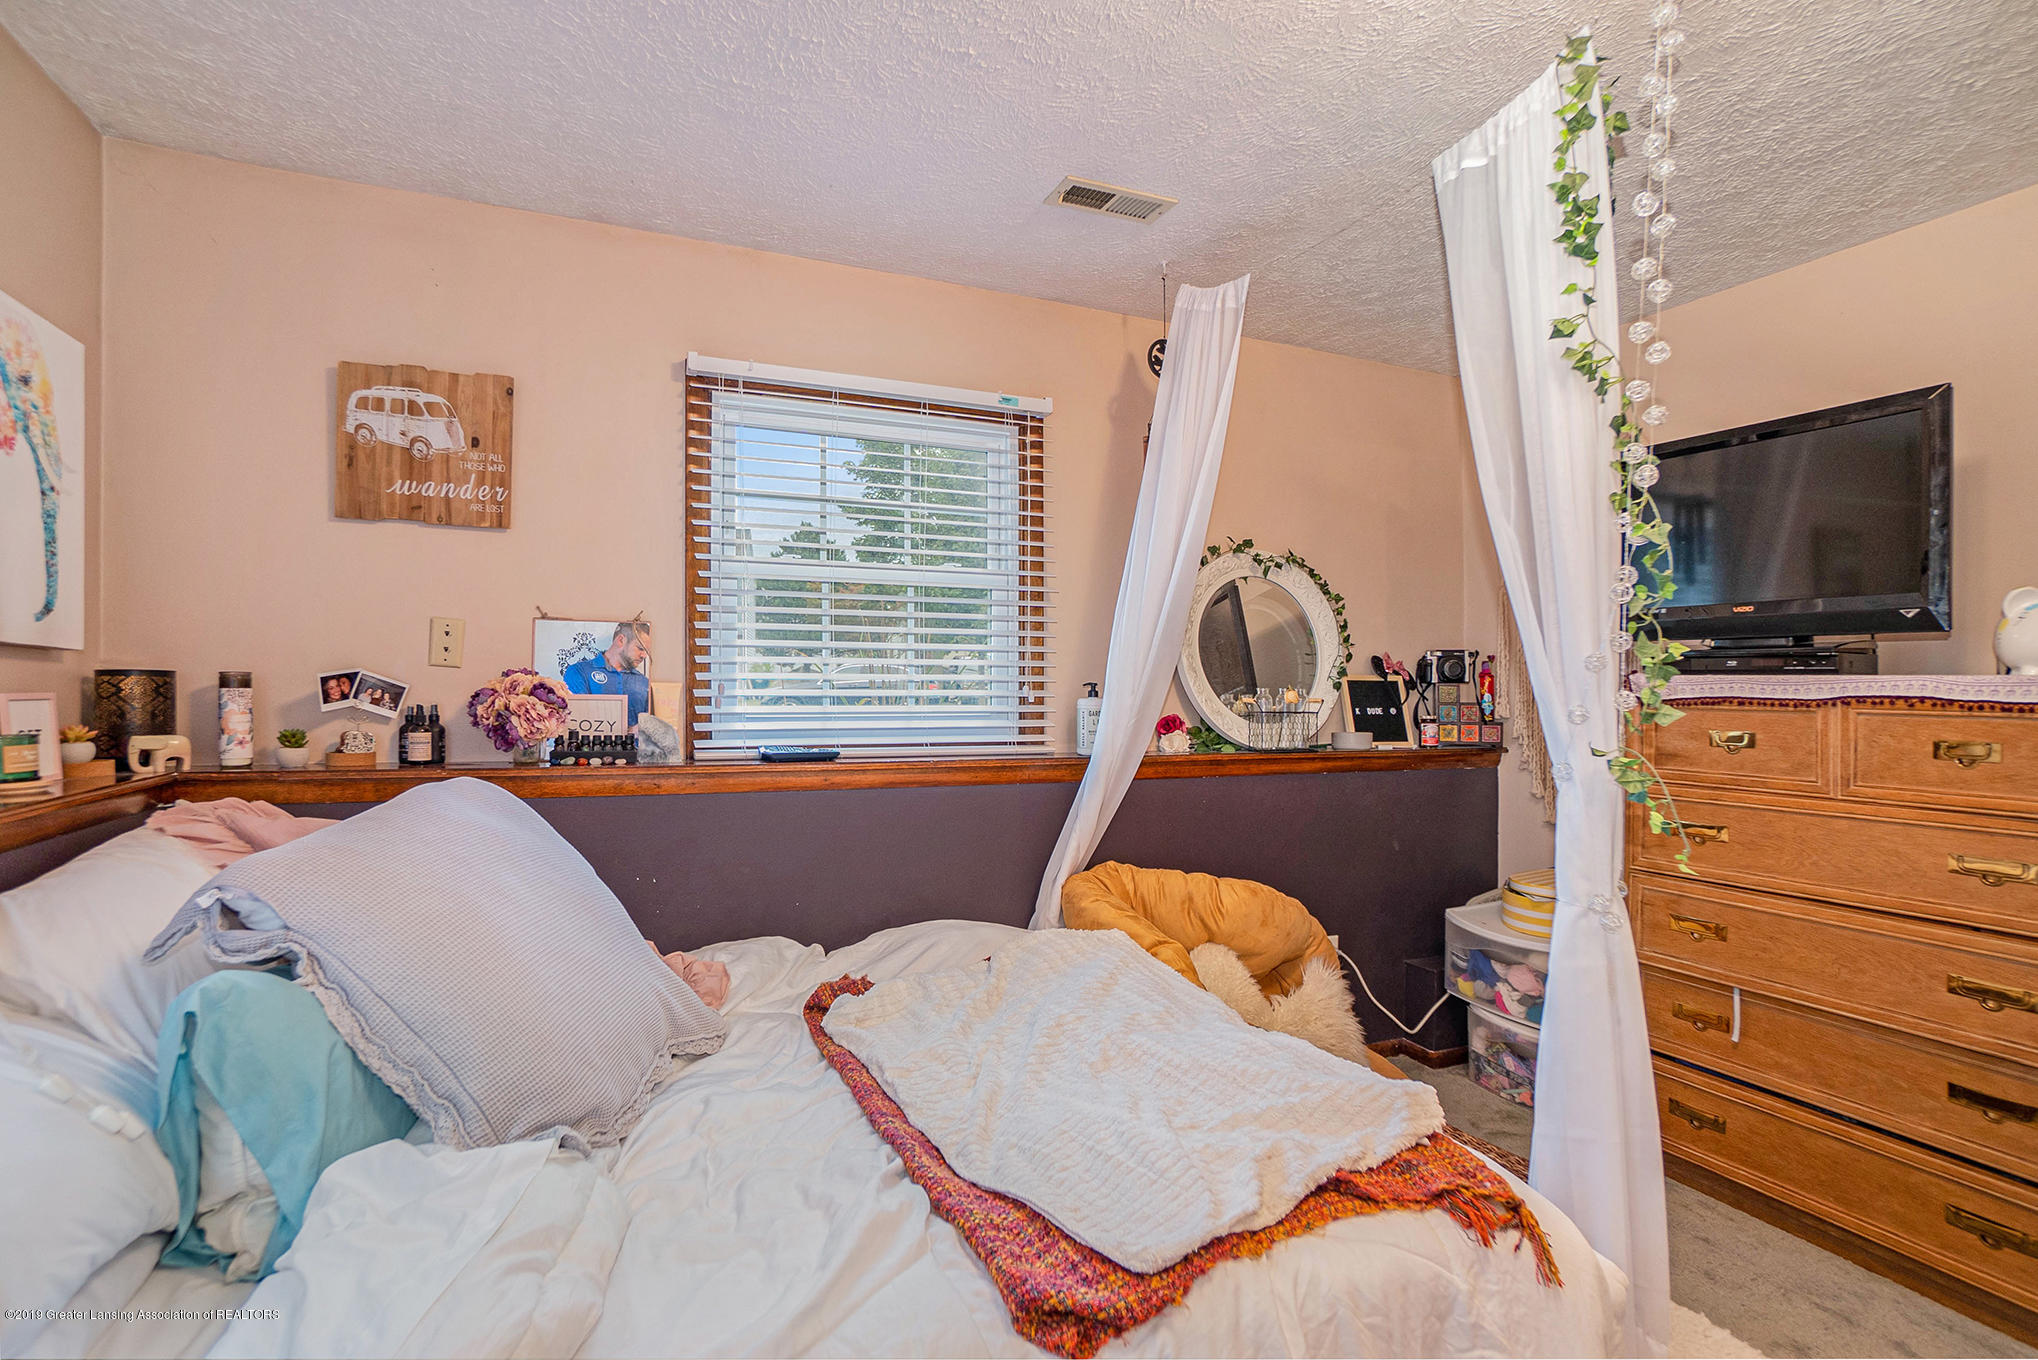 5800 Coulson Ct - Photo Aug 15, 9 13 29 AM - 12